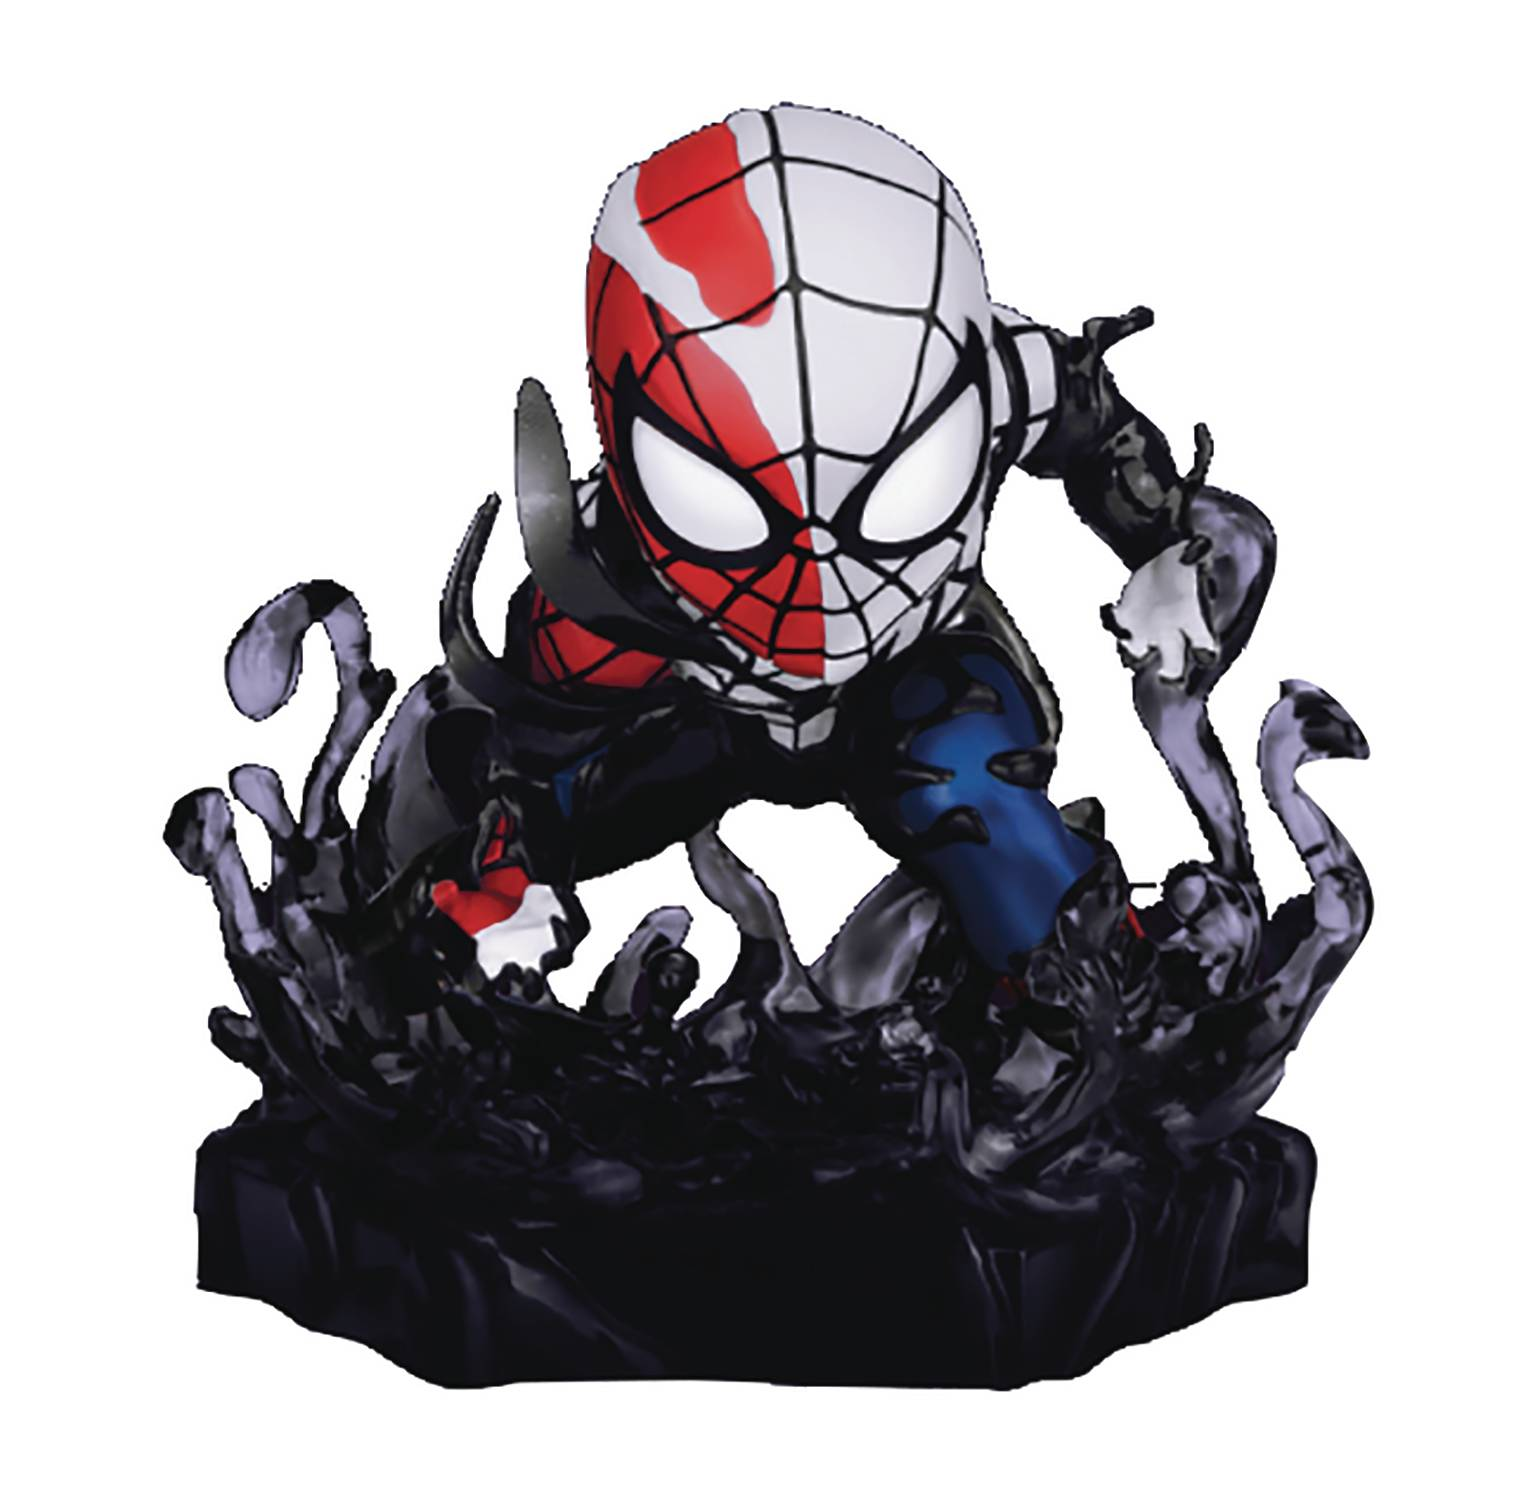 MARVEL MAXIMUM VENOM MEA-018 VENOMIZED SPIDER-MAN FIG